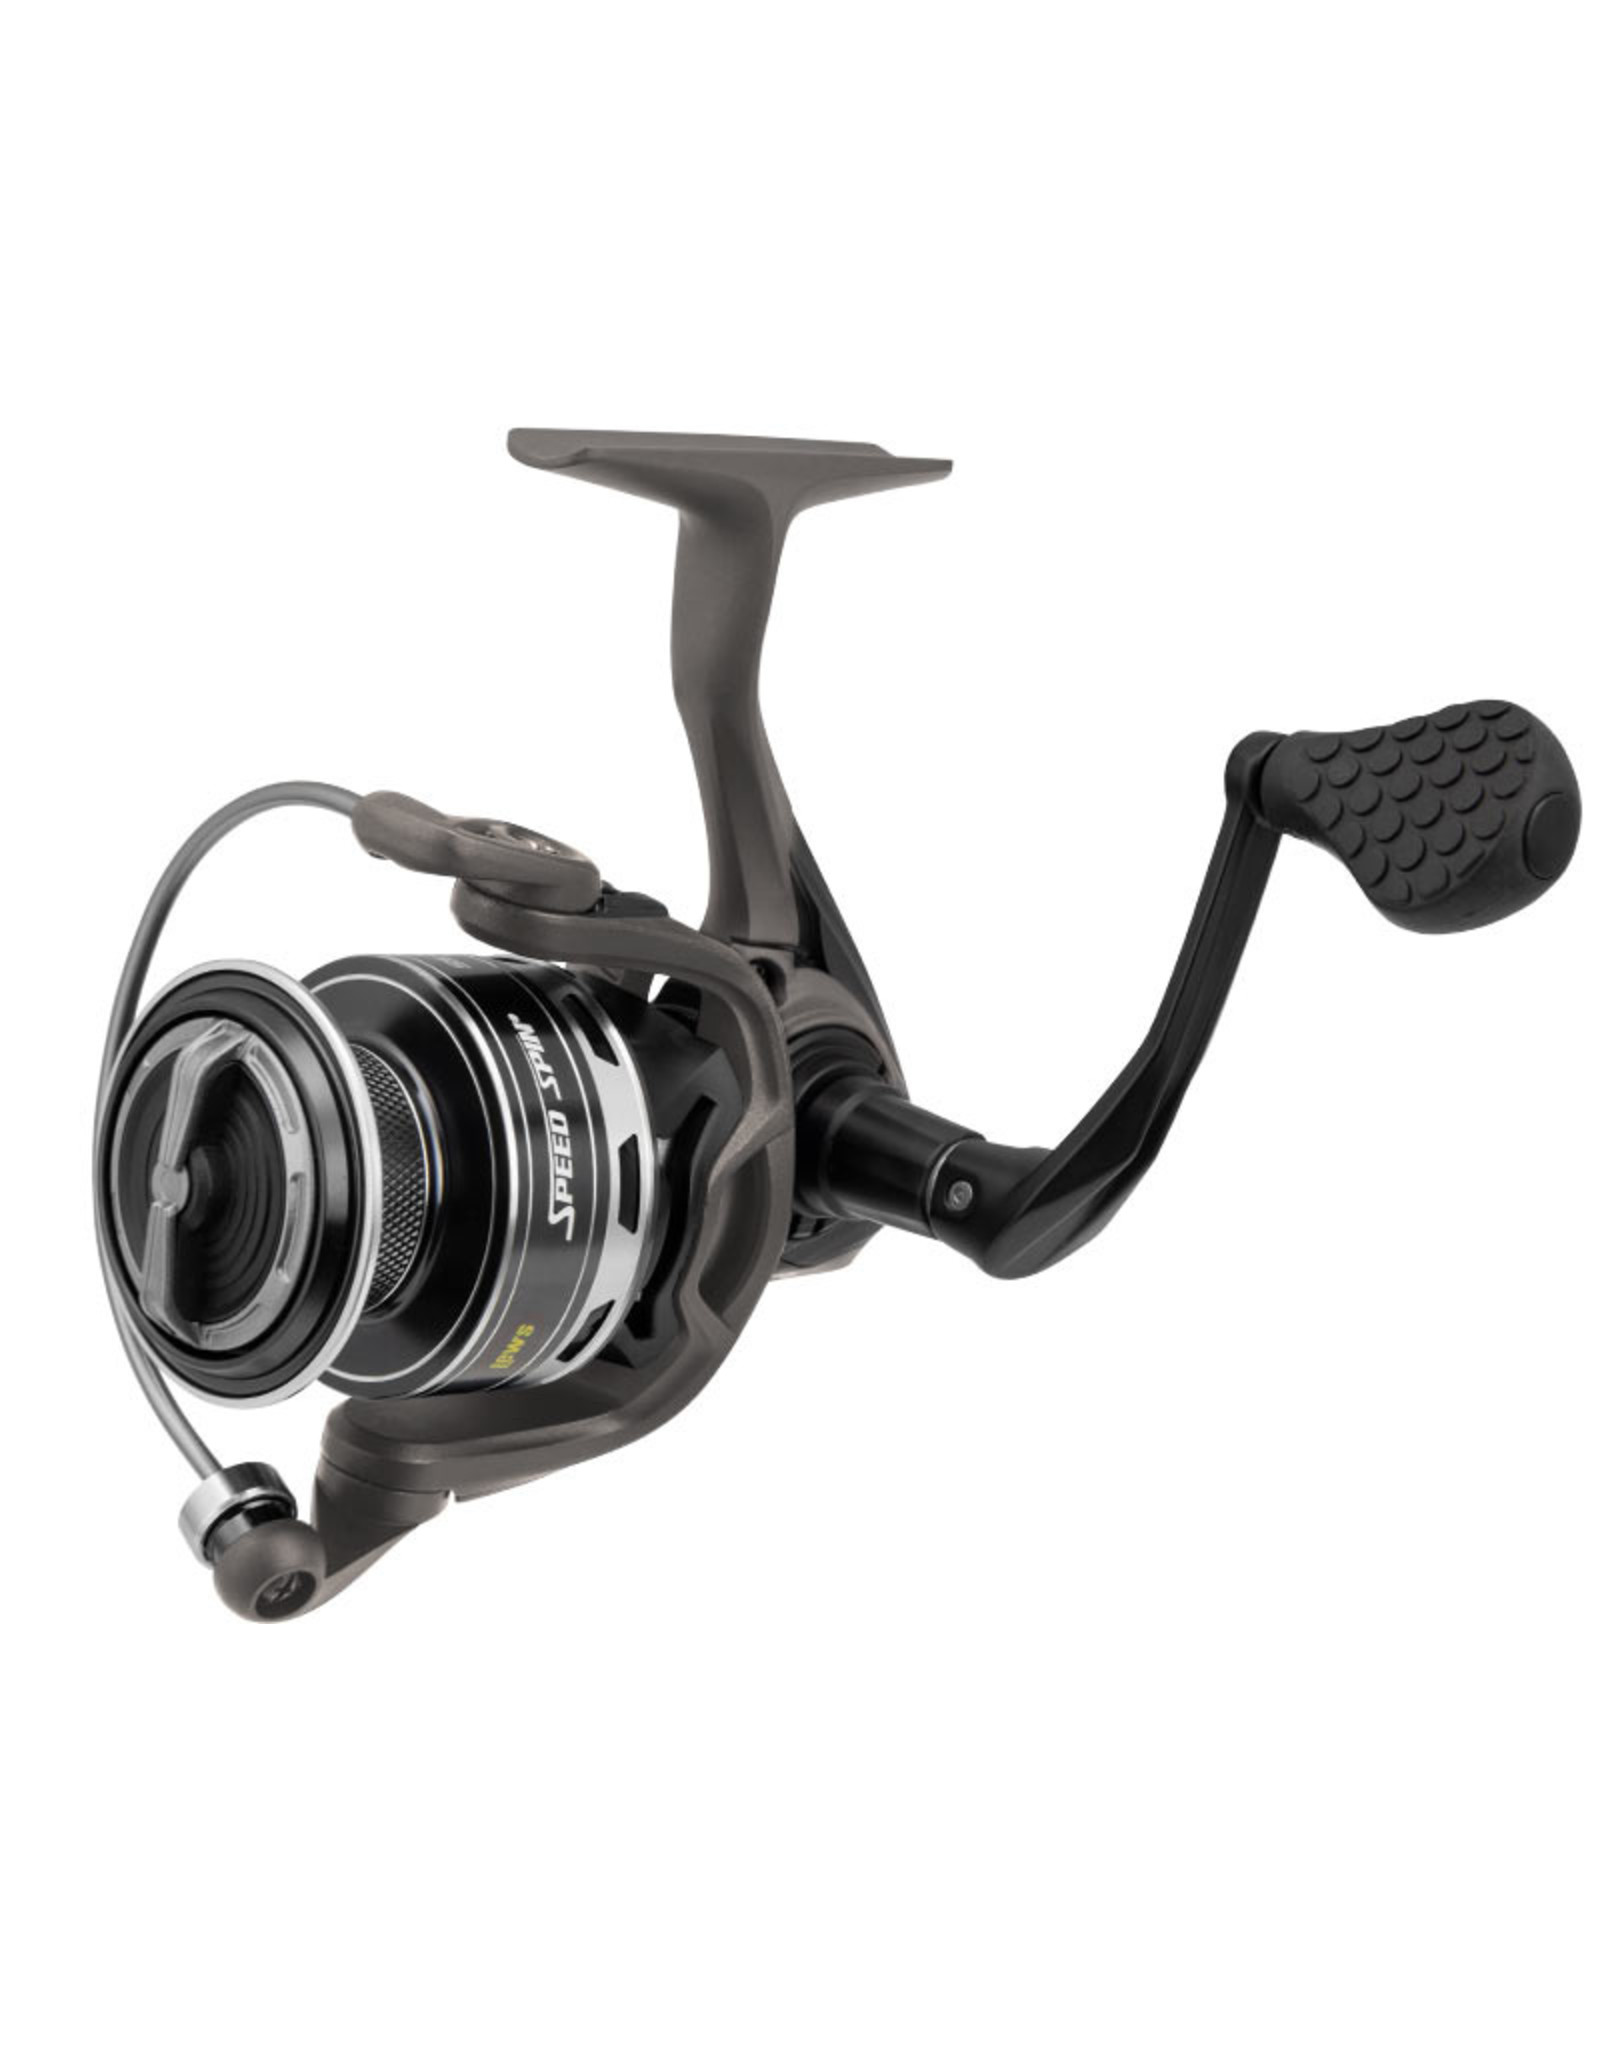 Lew's Lew's Speed Spin Series Spinning Reel